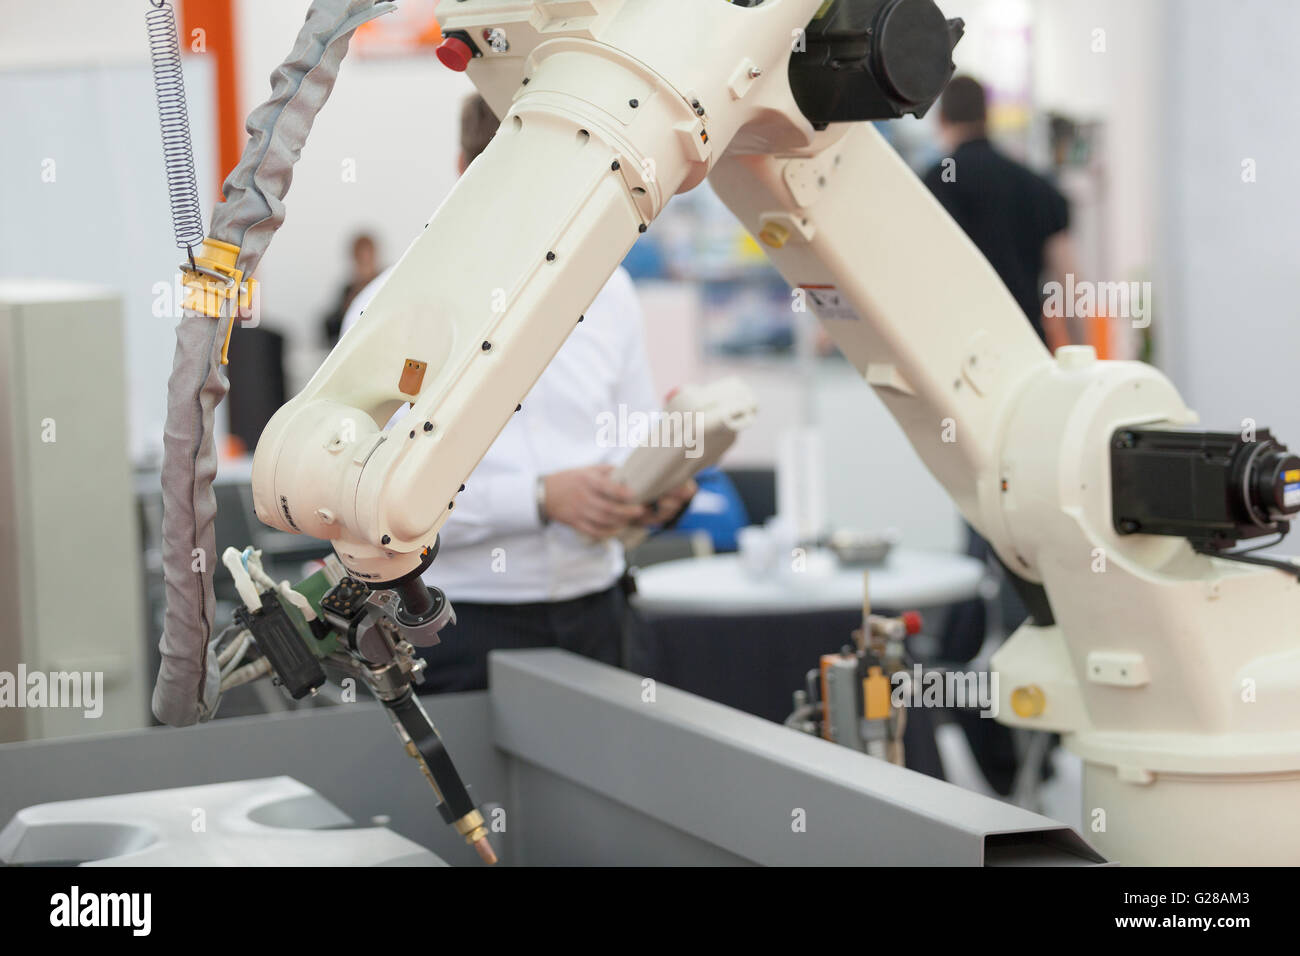 Industrial welding robot arm - Stock Image